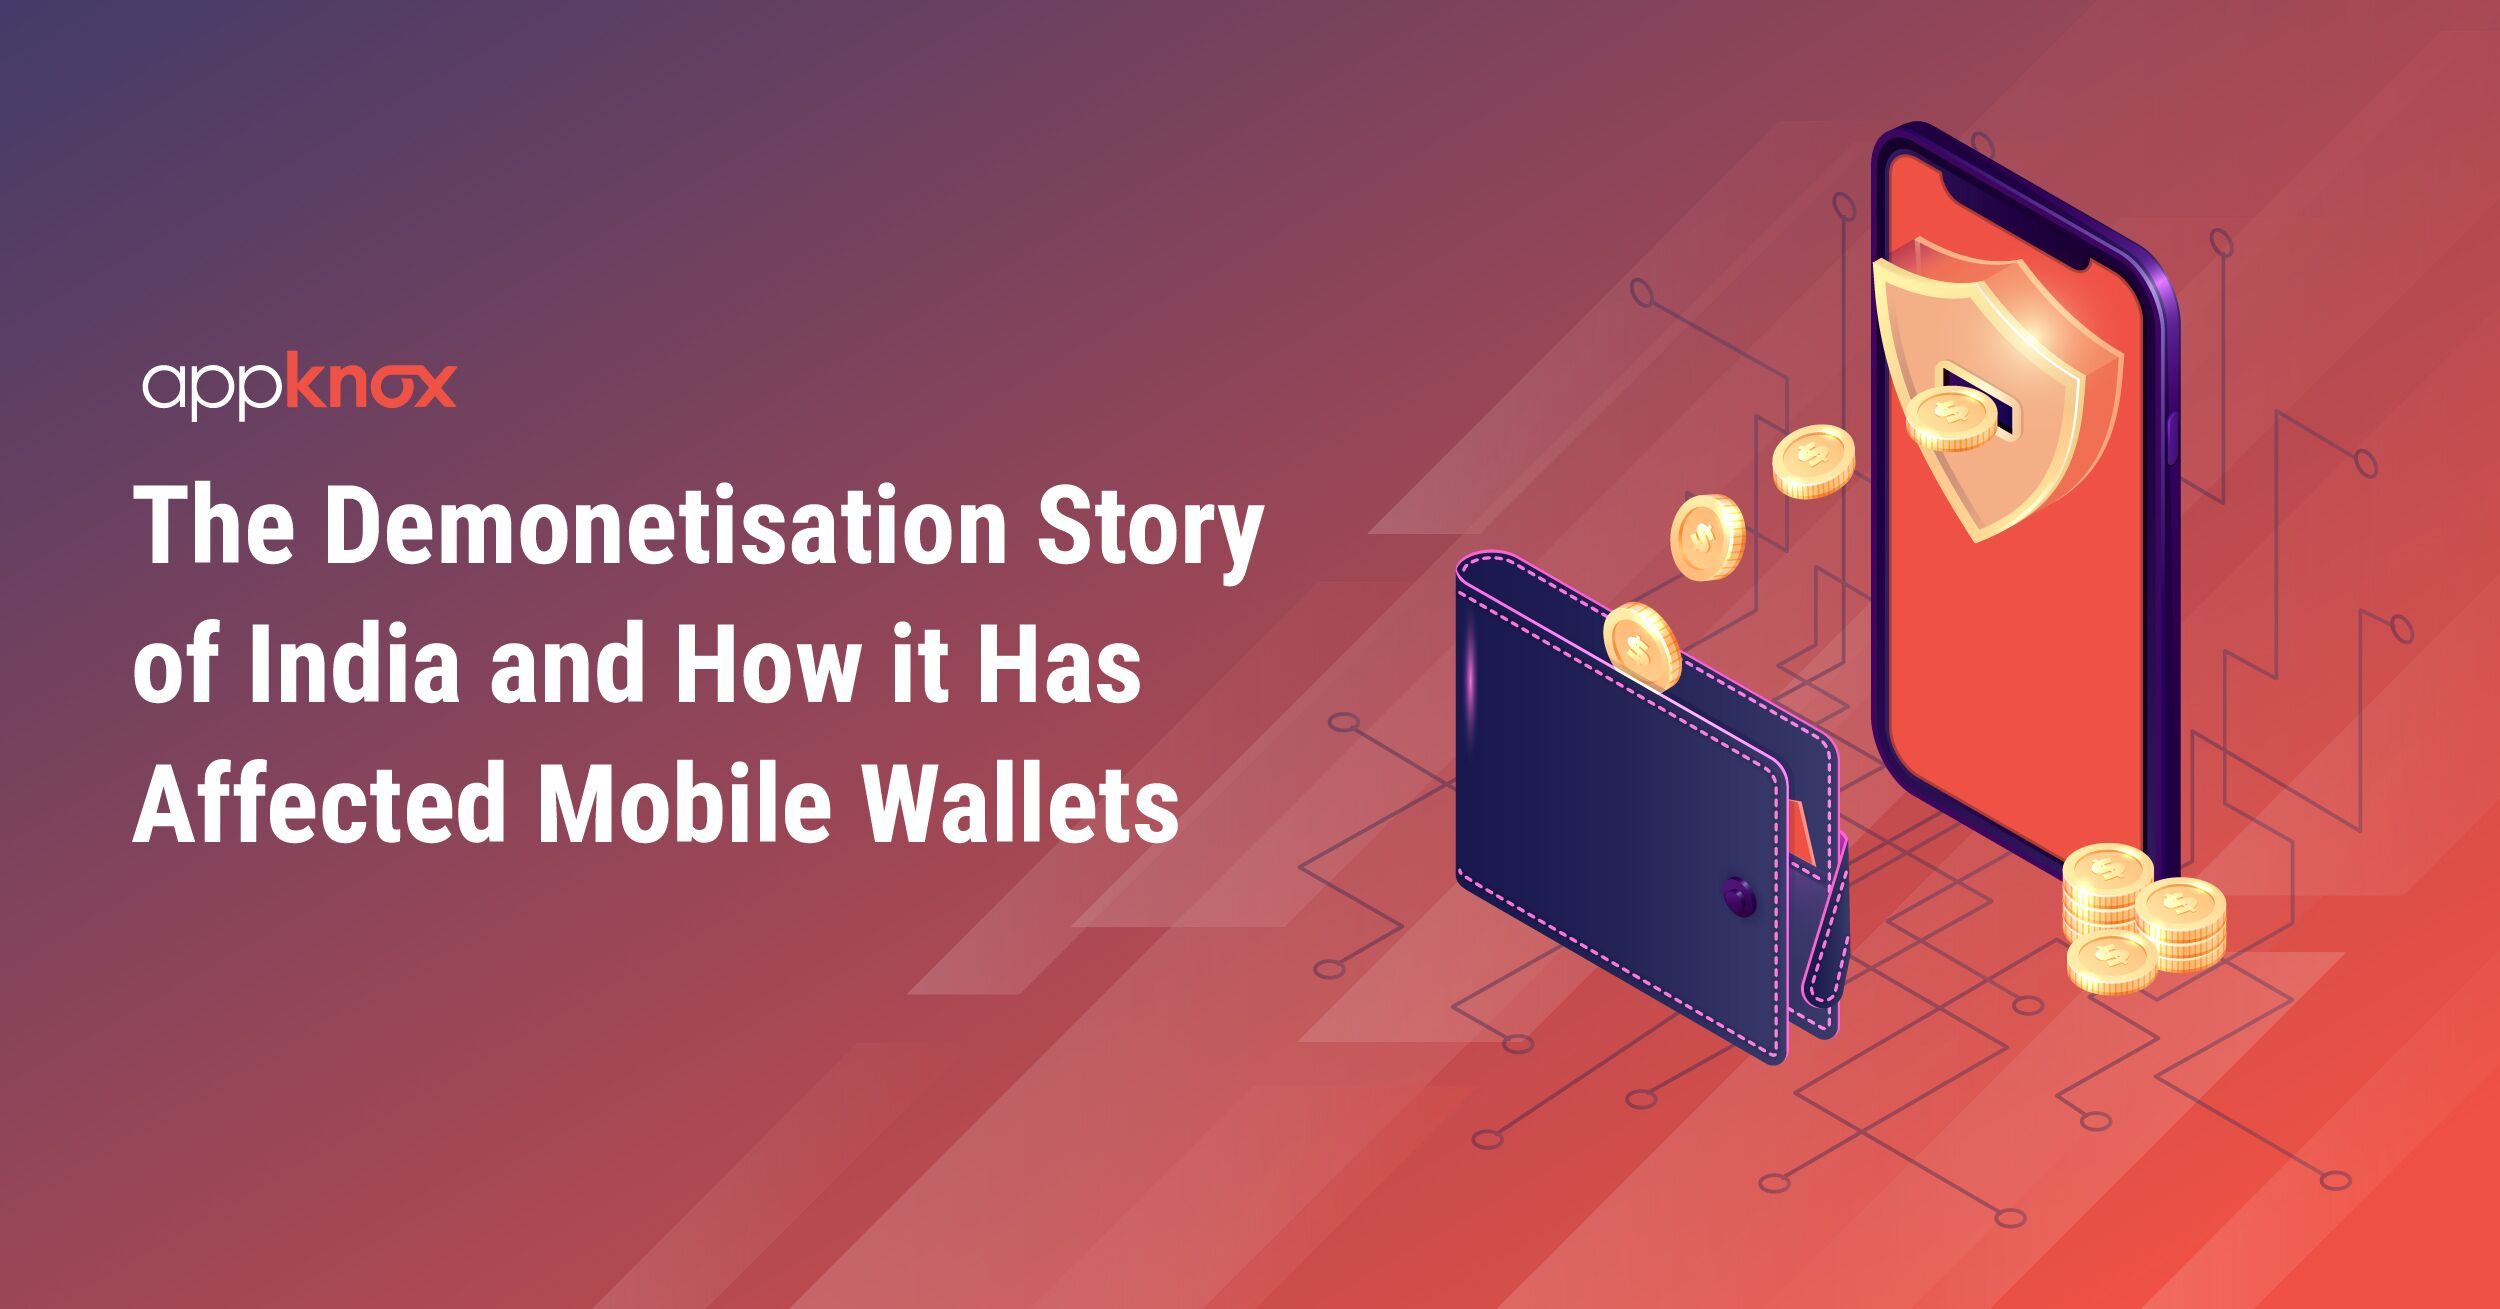 The Demonetisation story of India and How it has Affected Mobile Wallets